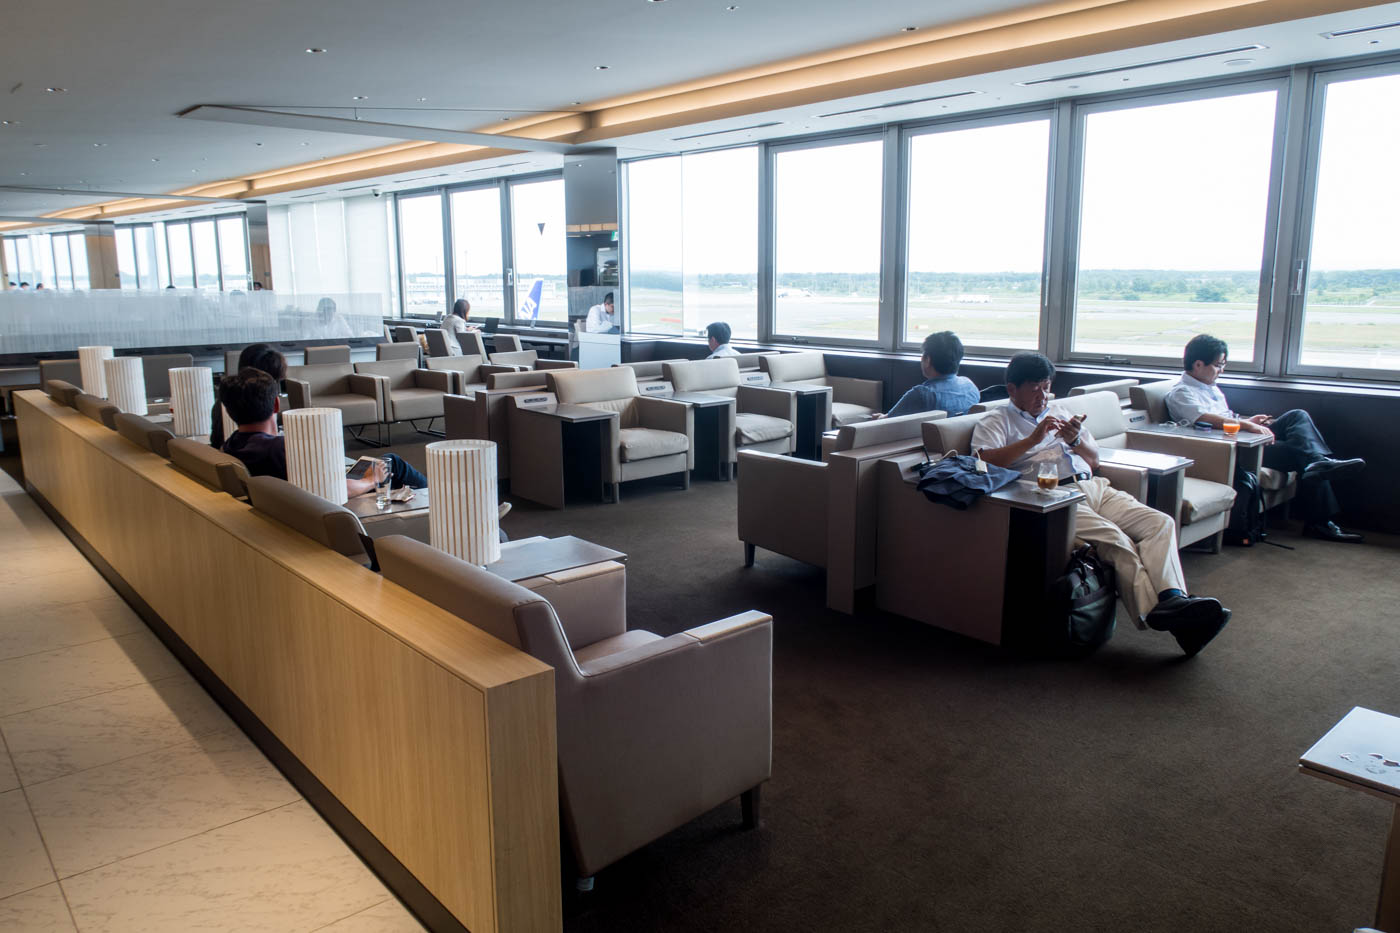 ANA Lounge Sapporo New Chitose Seating